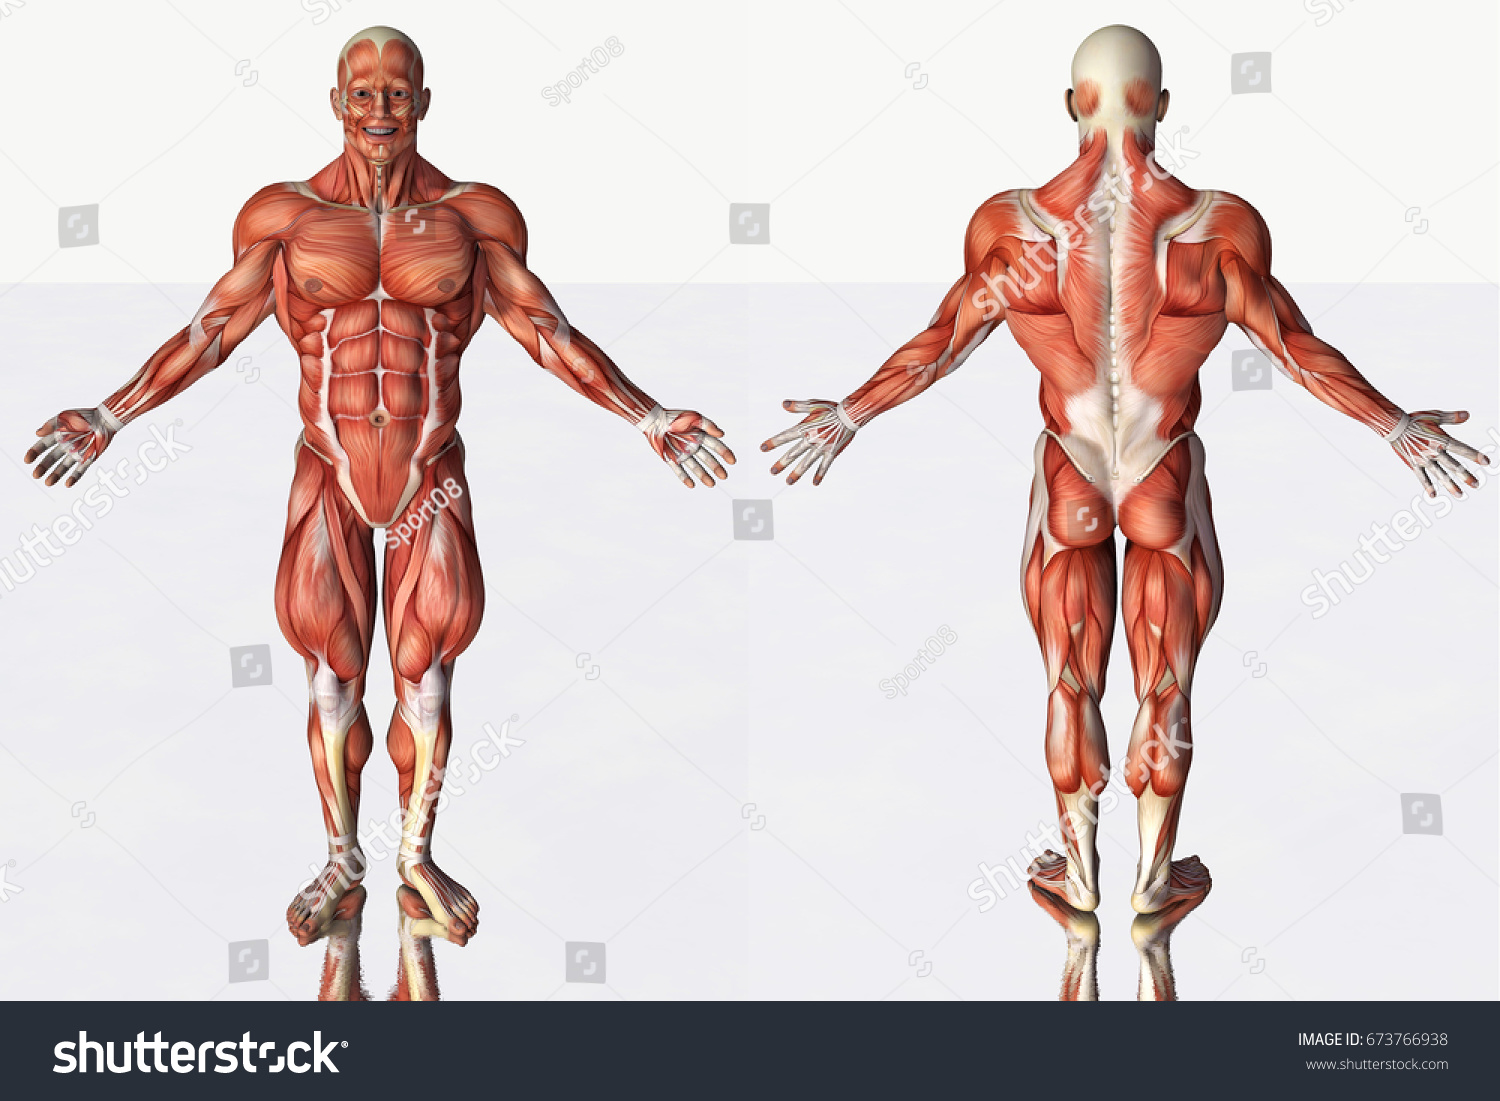 3 D Rendering Illustration Muscular Anatomical Strong Stock ...